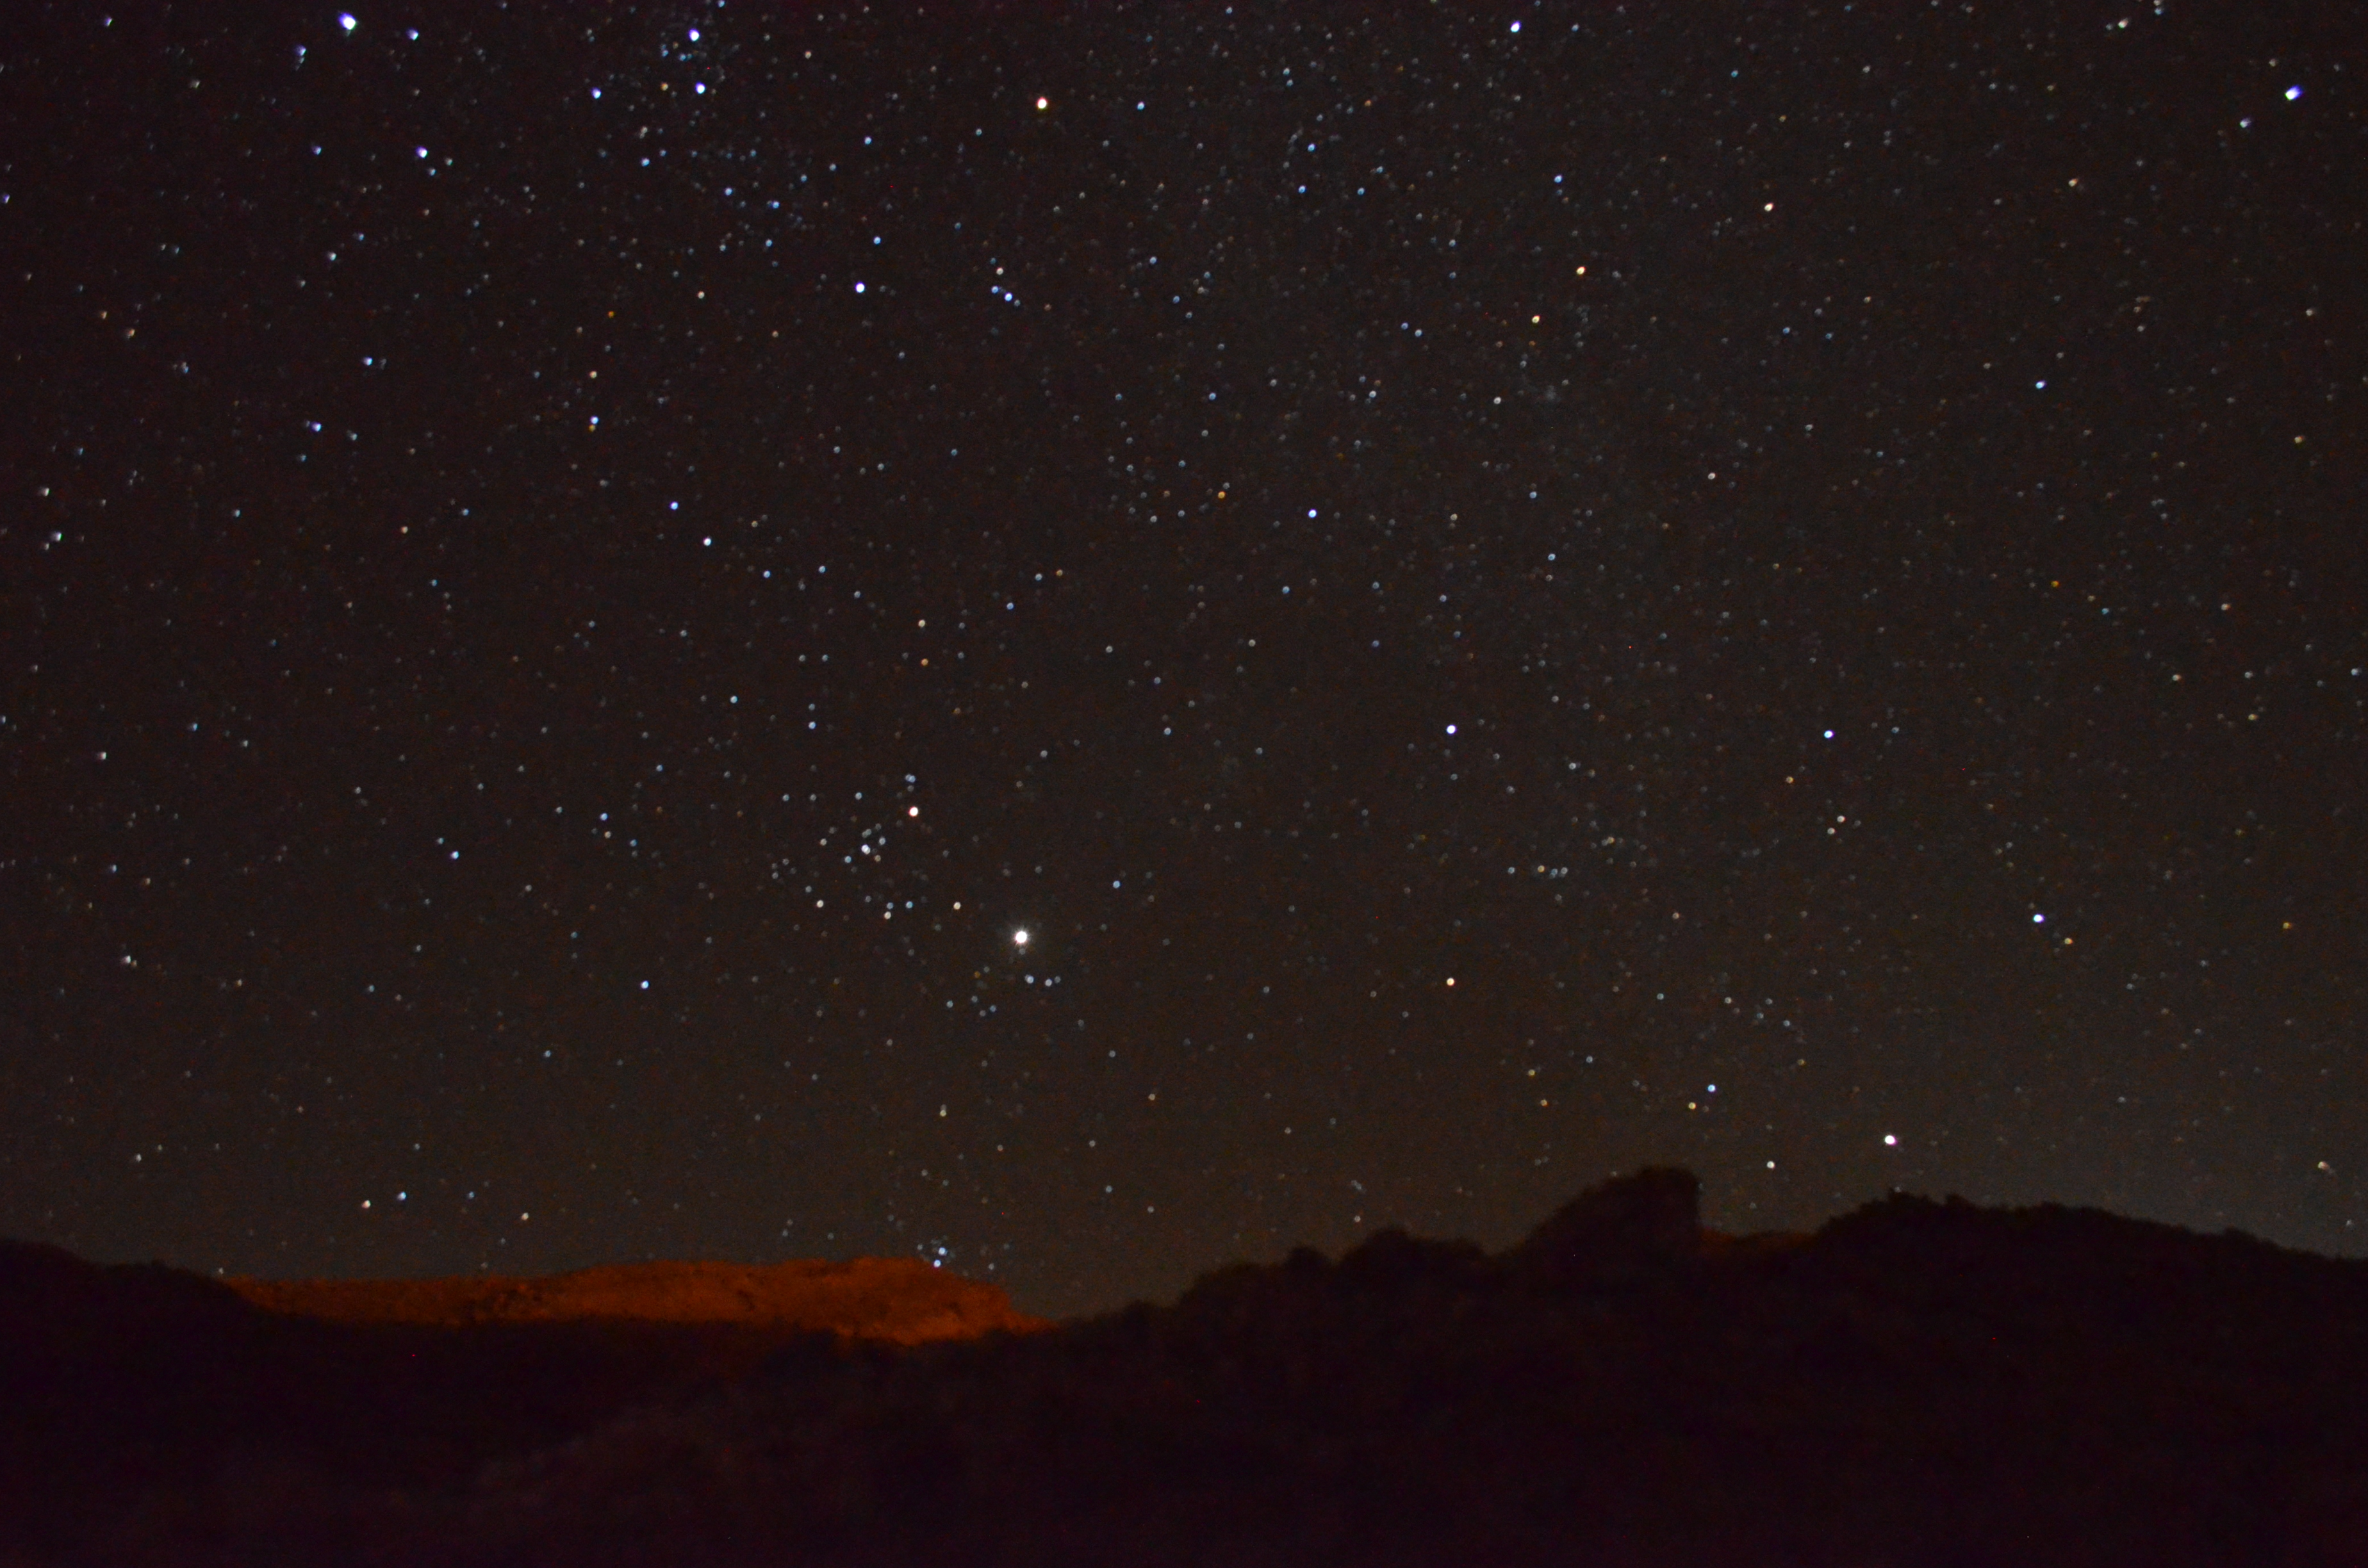 The stars shine bright and clear above the small desert oasis town of San Pedro de Atacama.